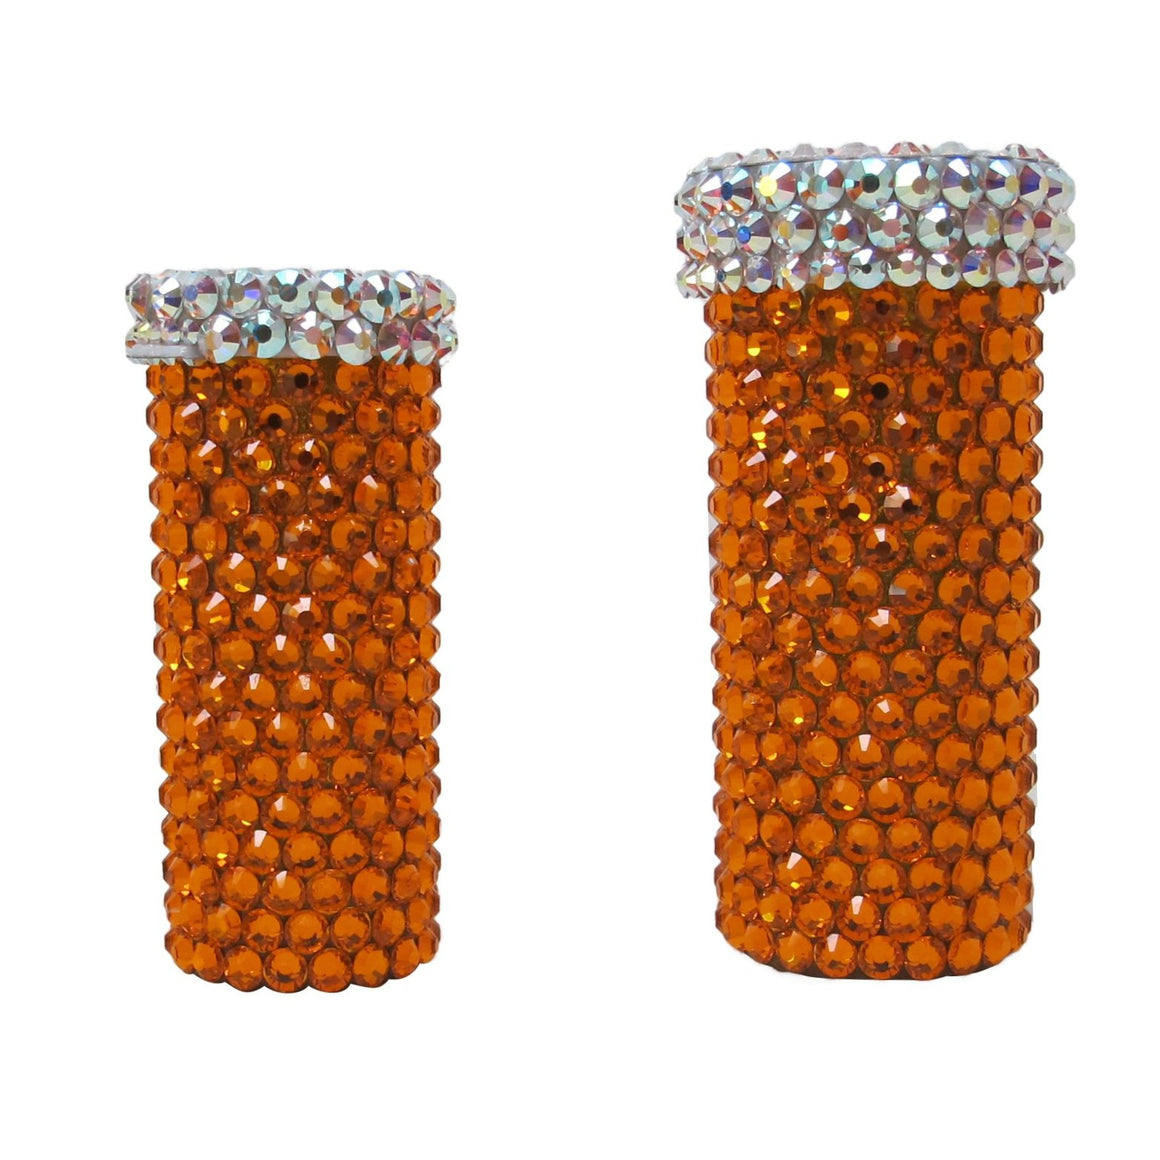 Pill Bottle 2  |  Large Crystals